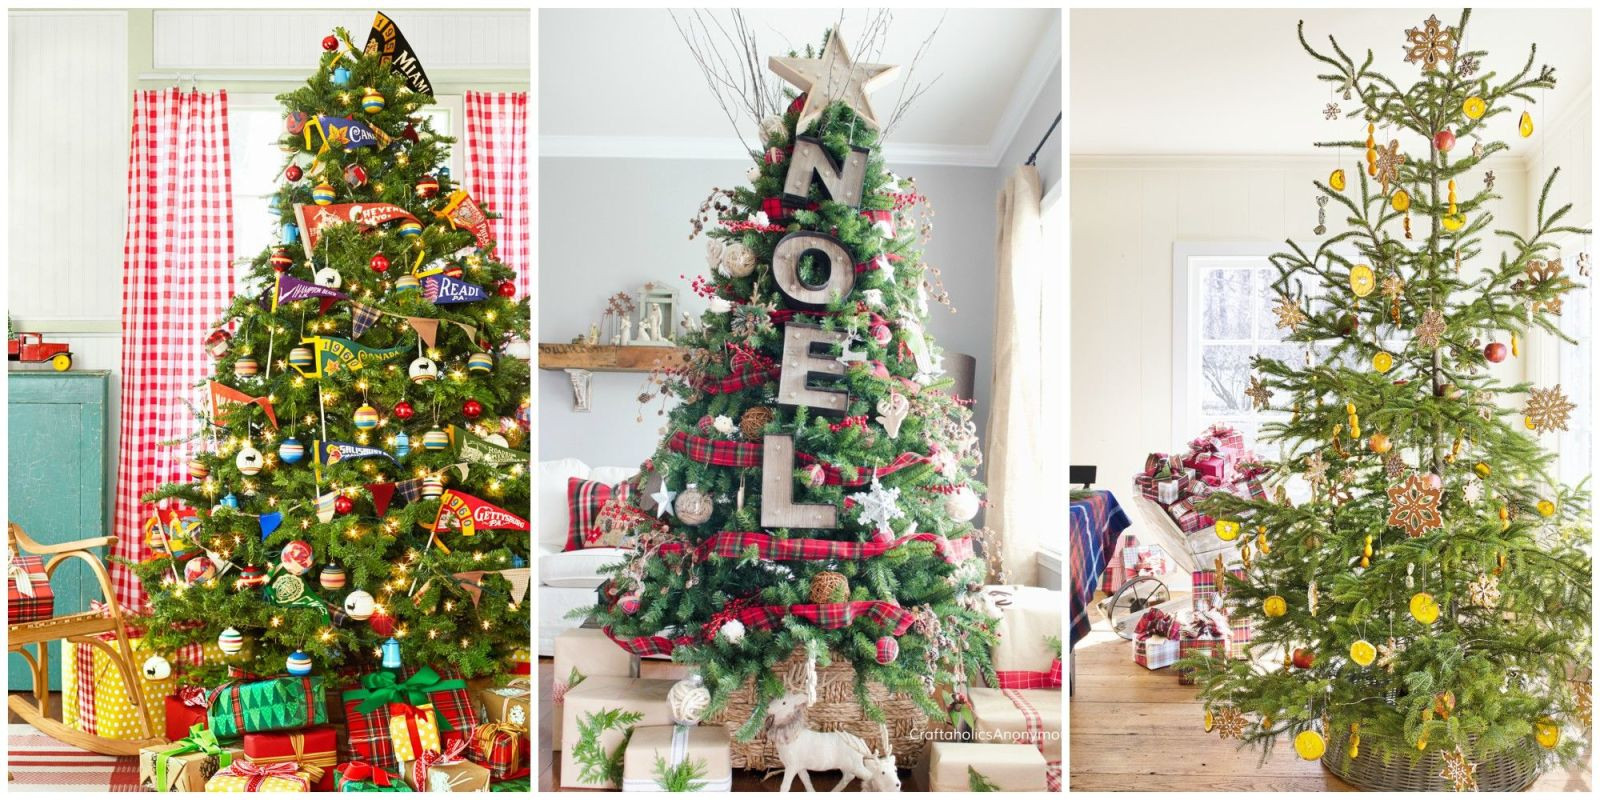 Christmas Tree Decorations Unique Best Christmas Trees Free Download 2018 Of Superb 49 Pics Christmas Tree Decorations